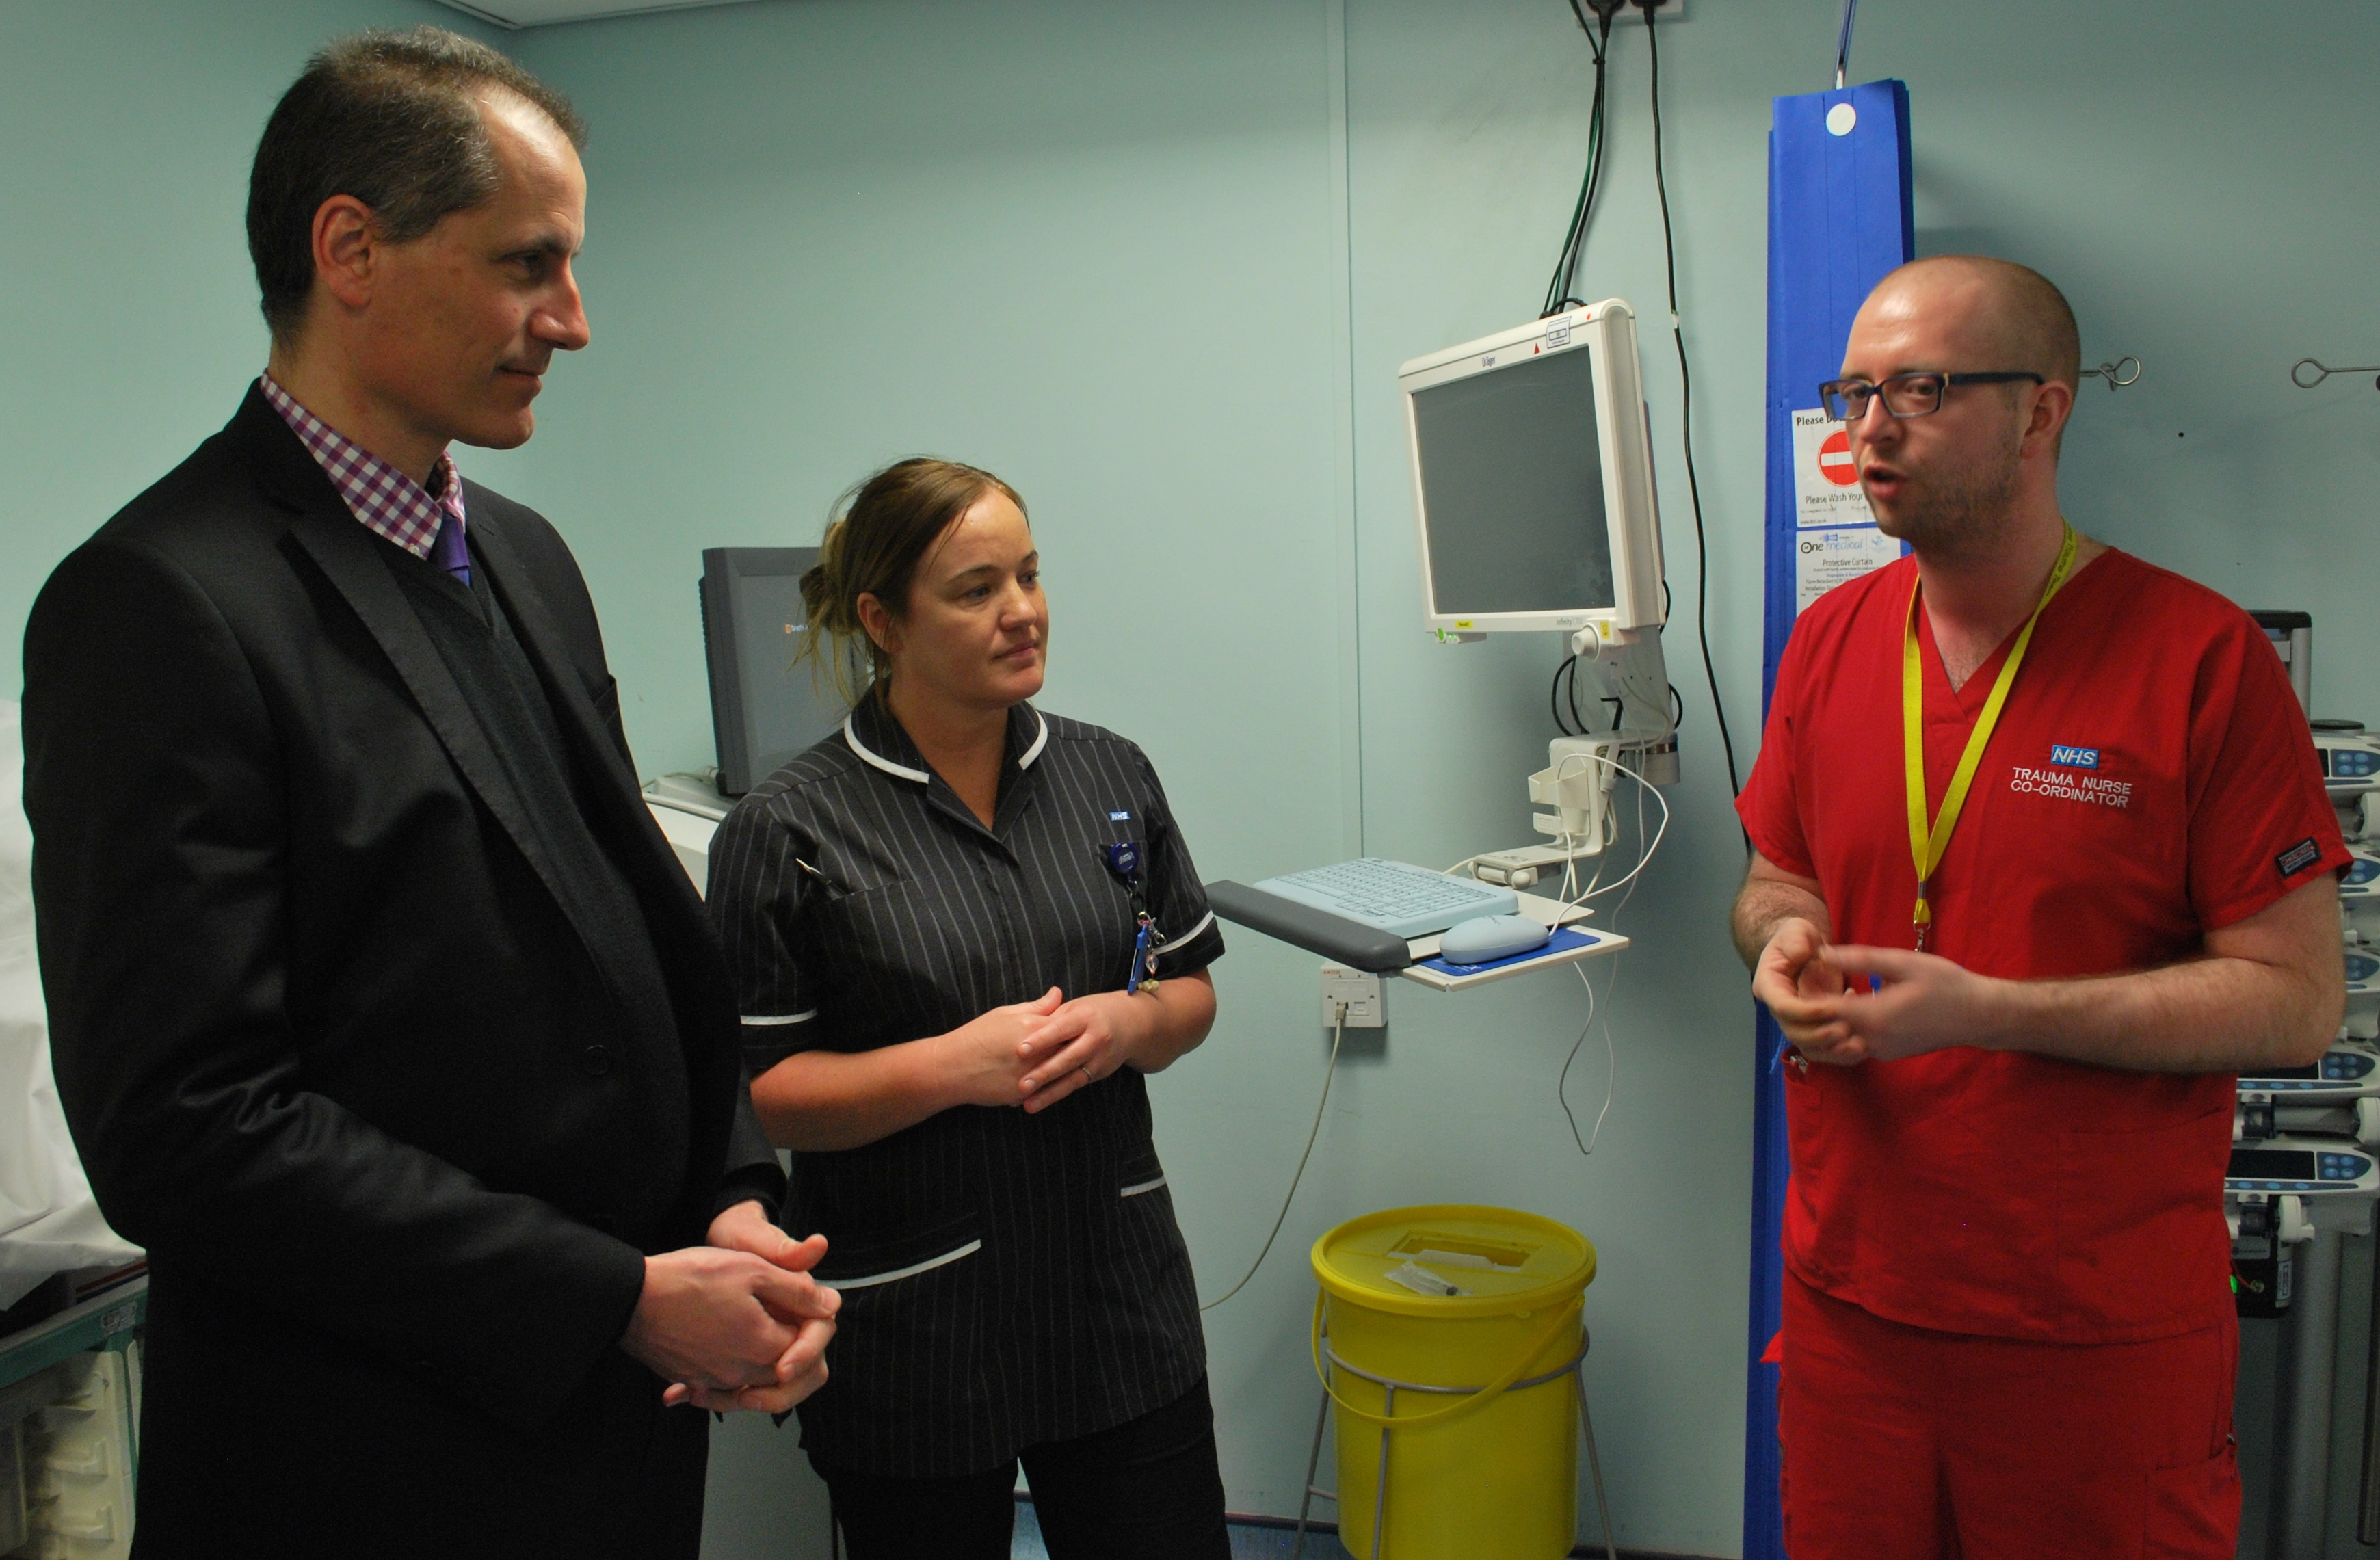 Sefton Central Labour MP Bill Esterson during his visit to Aintree University Hospital